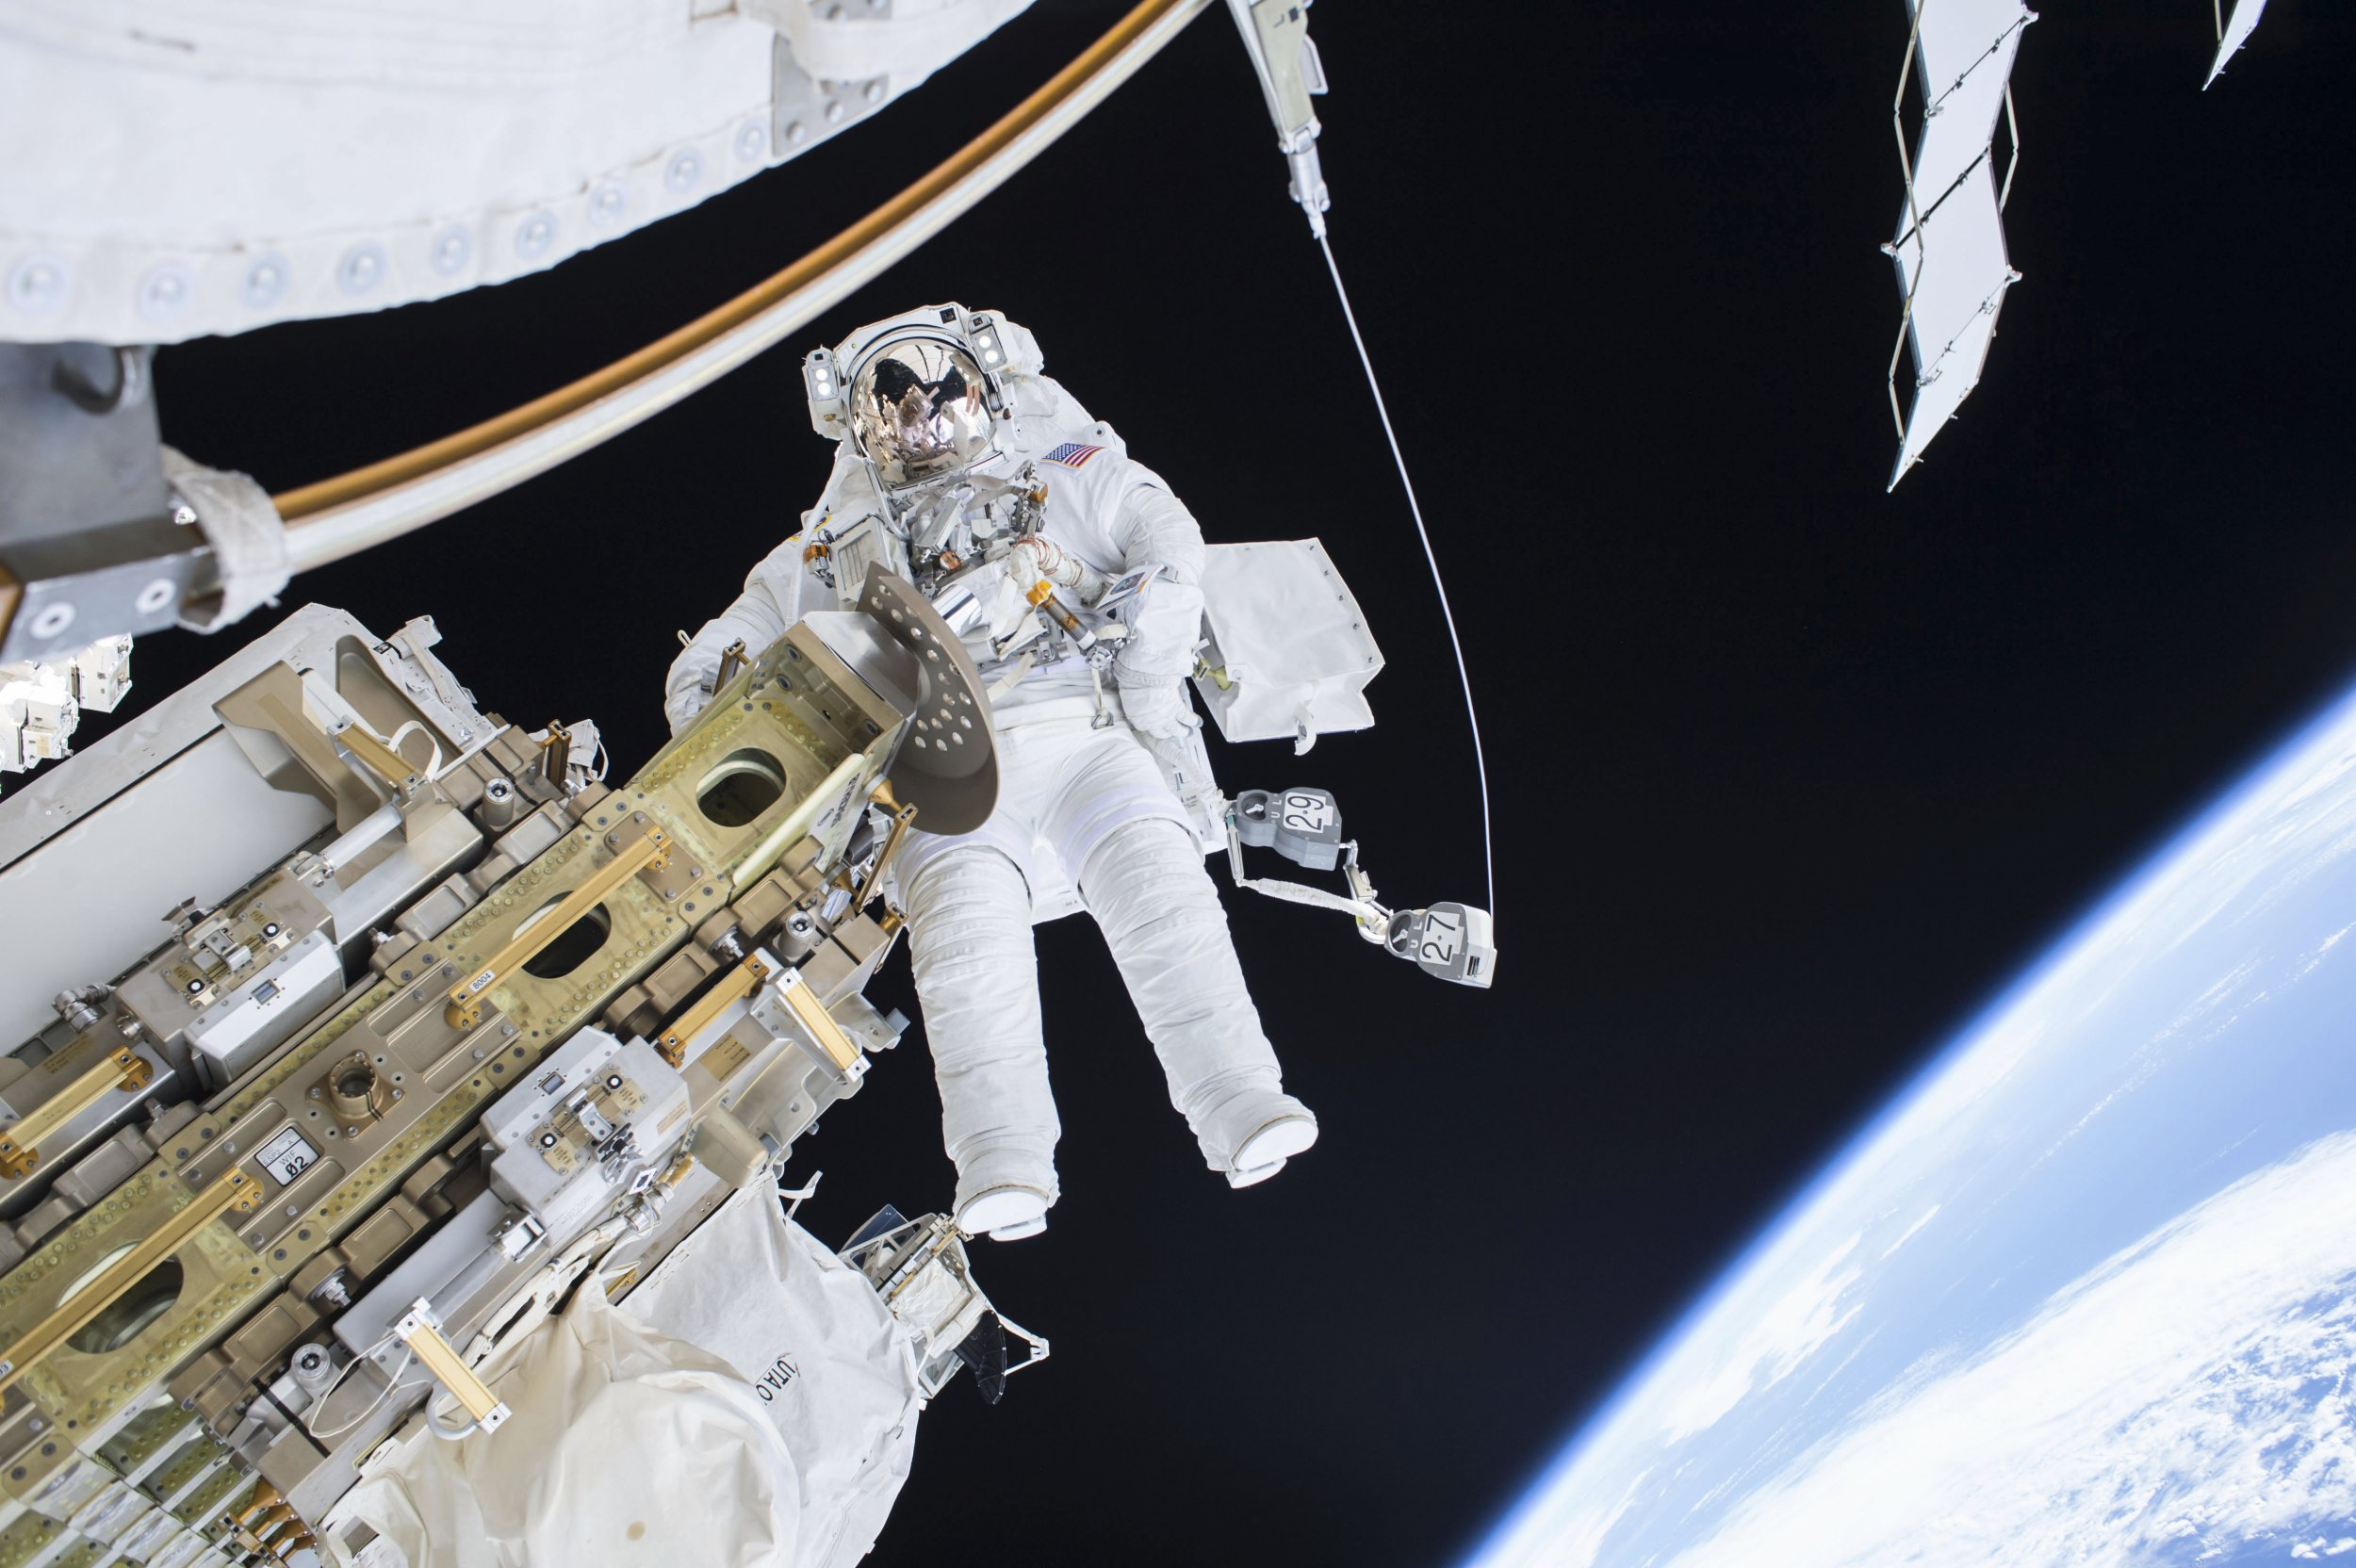 Want to Be an Astronaut? NASA Is More Selective Than Any Top ...